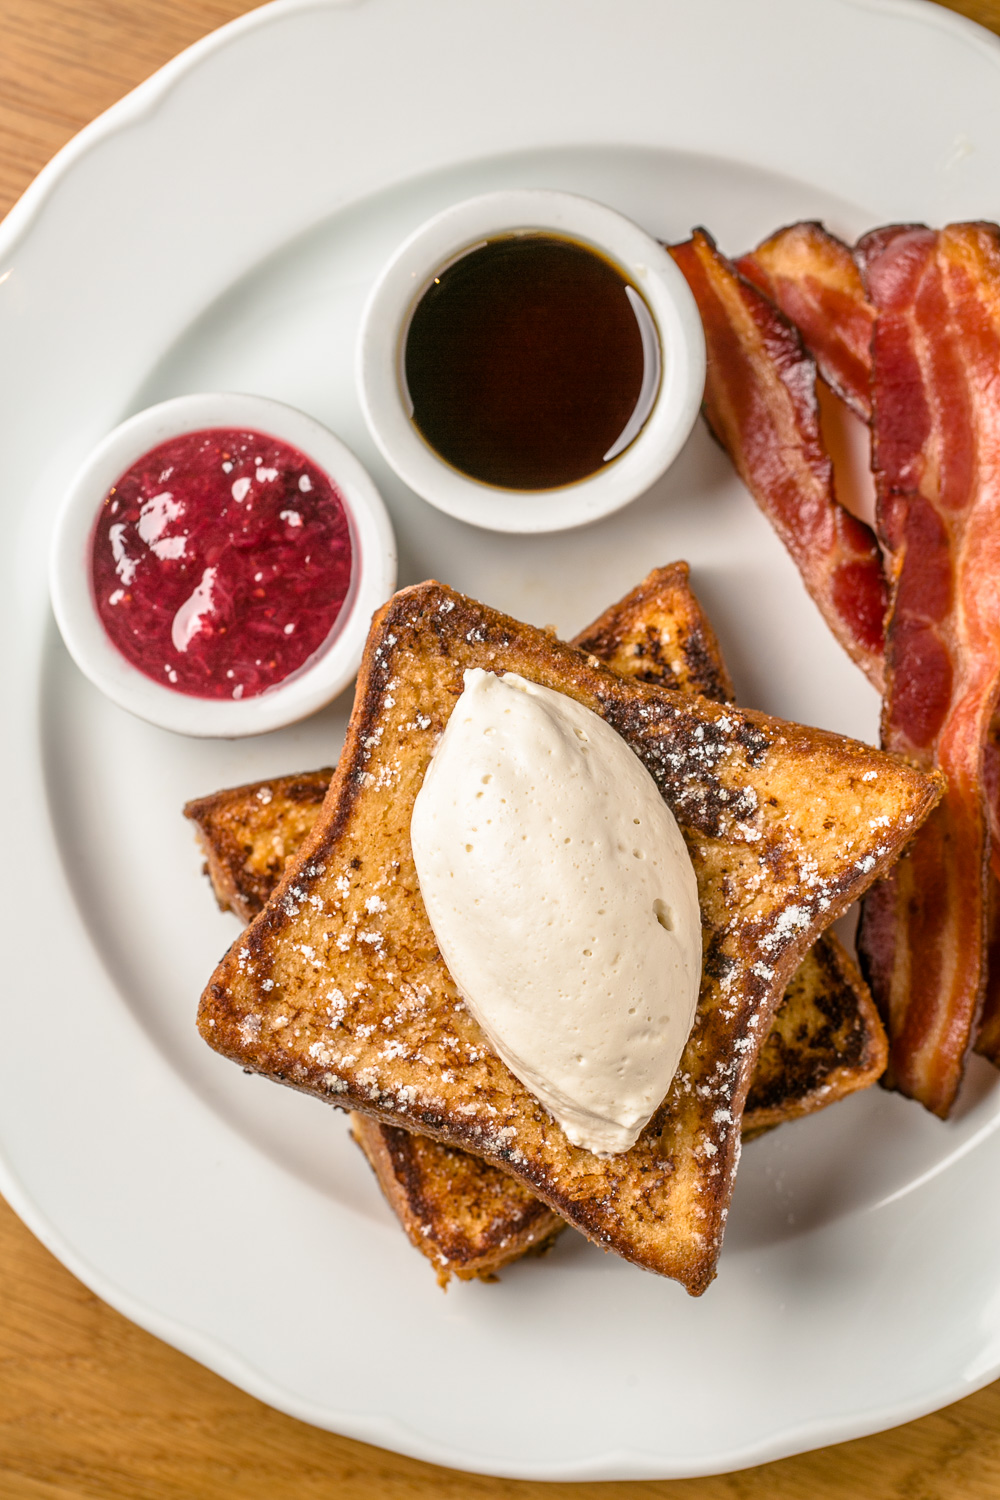 Omni-Hotel-at-The-Battery-Atlanta-Suntrust-Park-French-Toast-Erik-Meadows